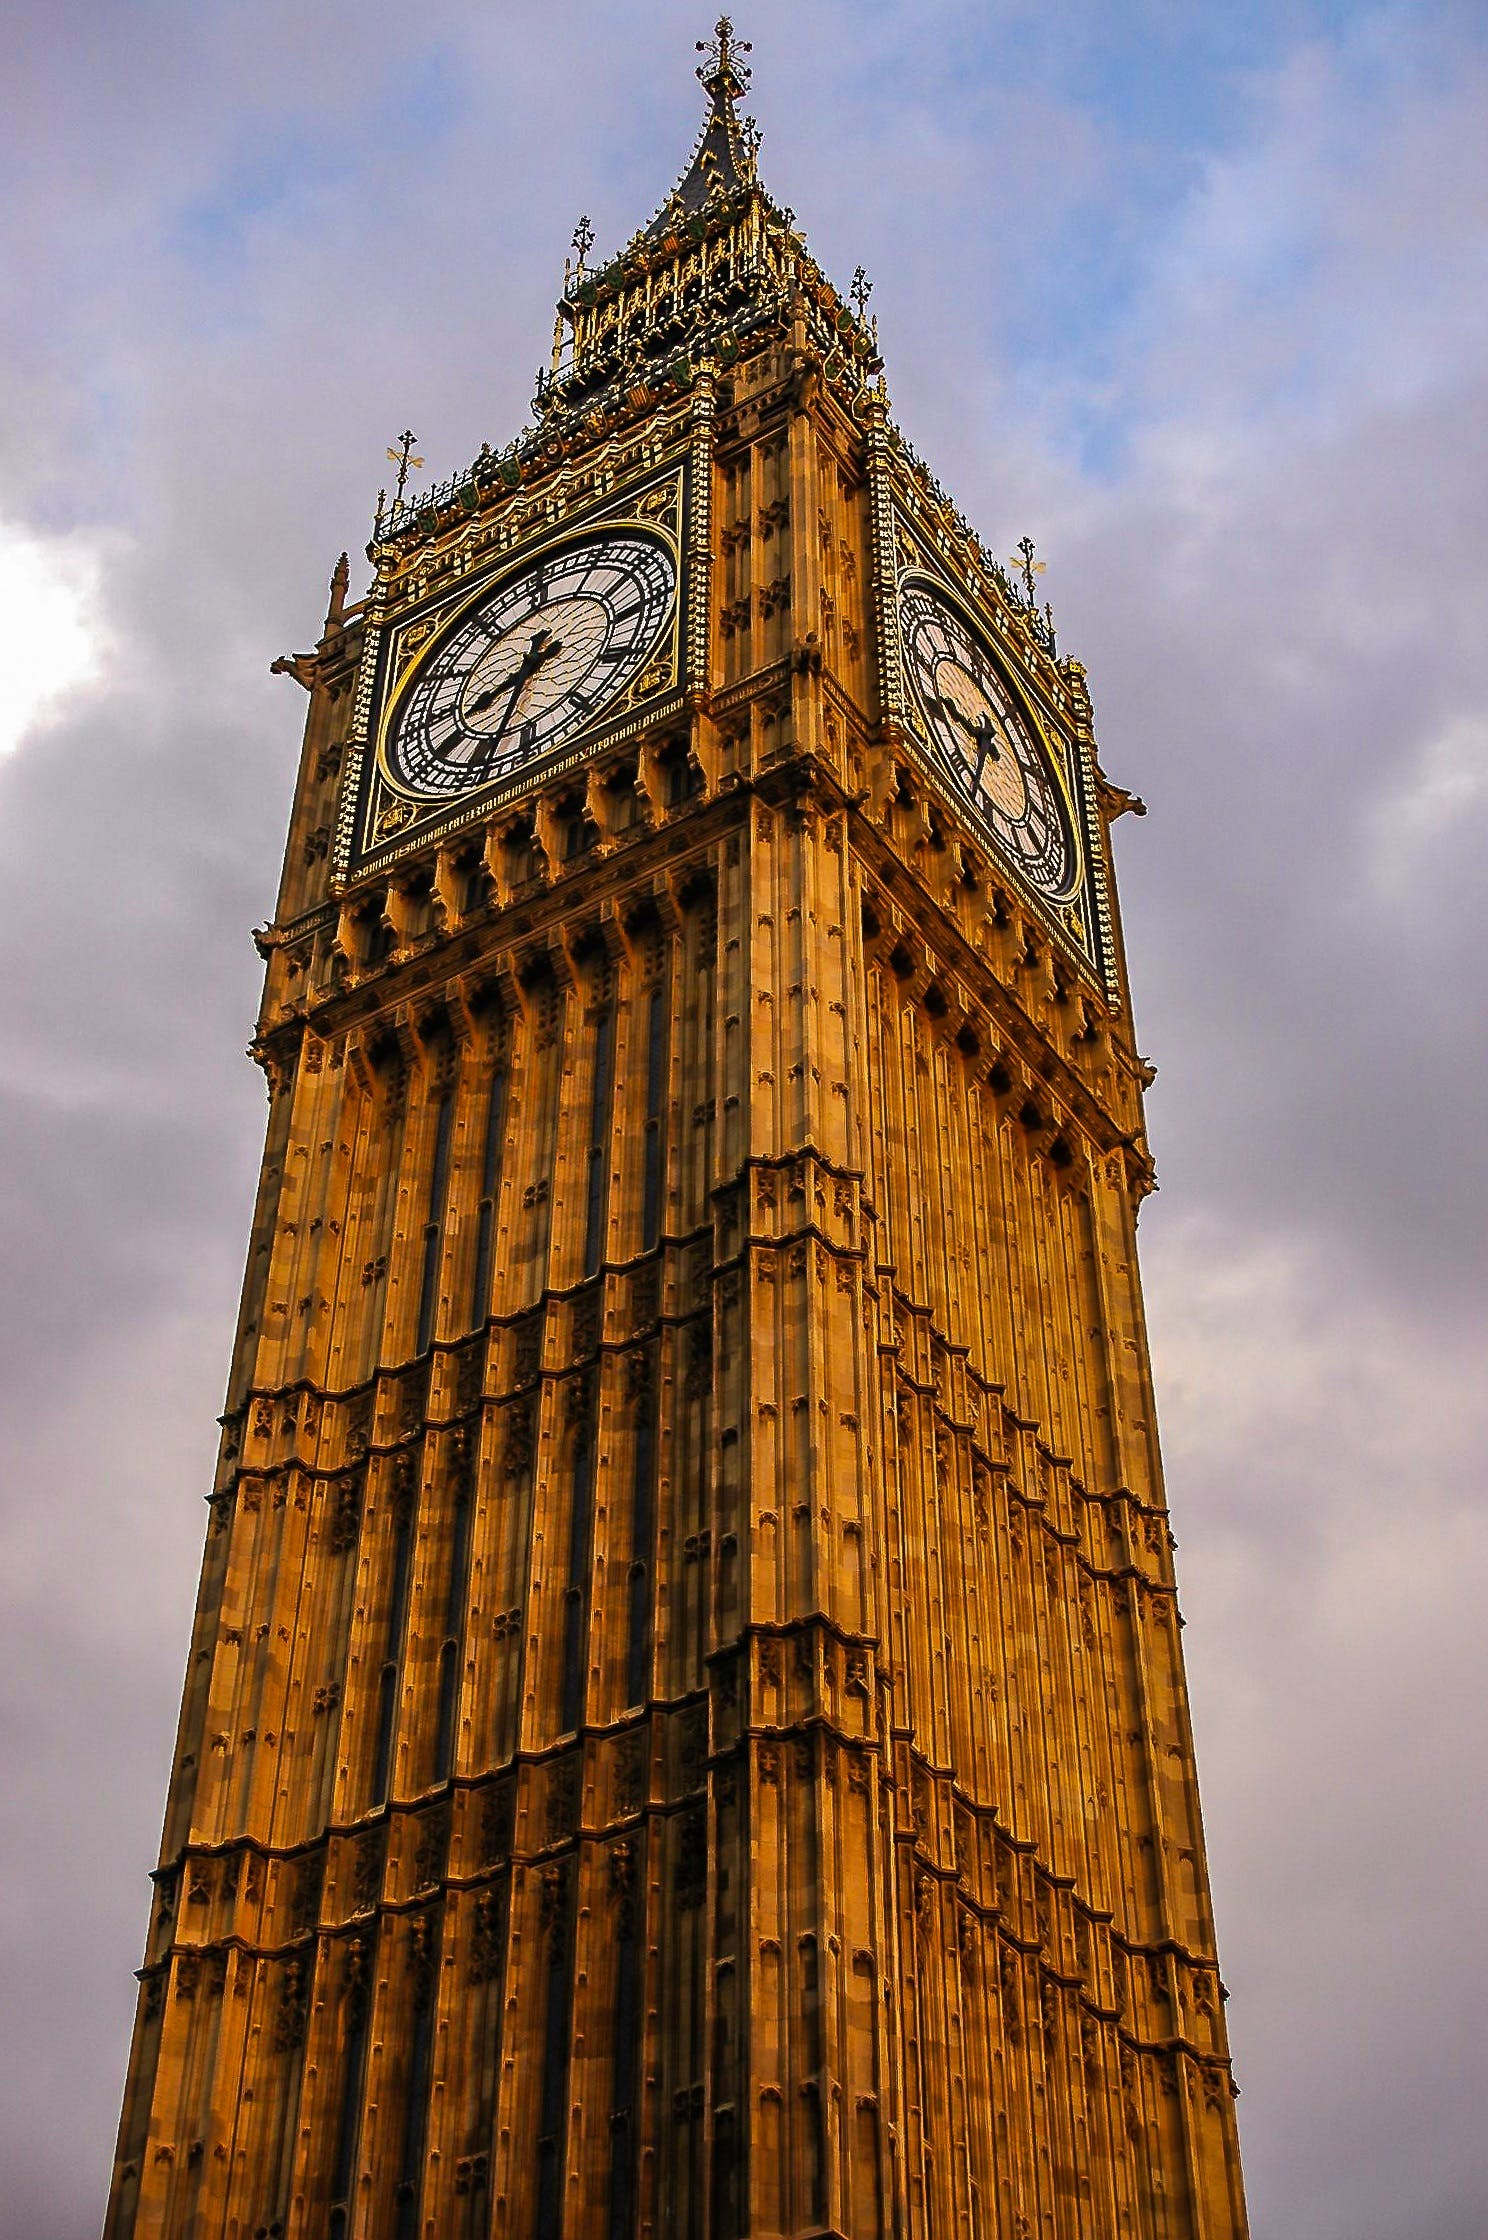 Bottom View of Big Ben